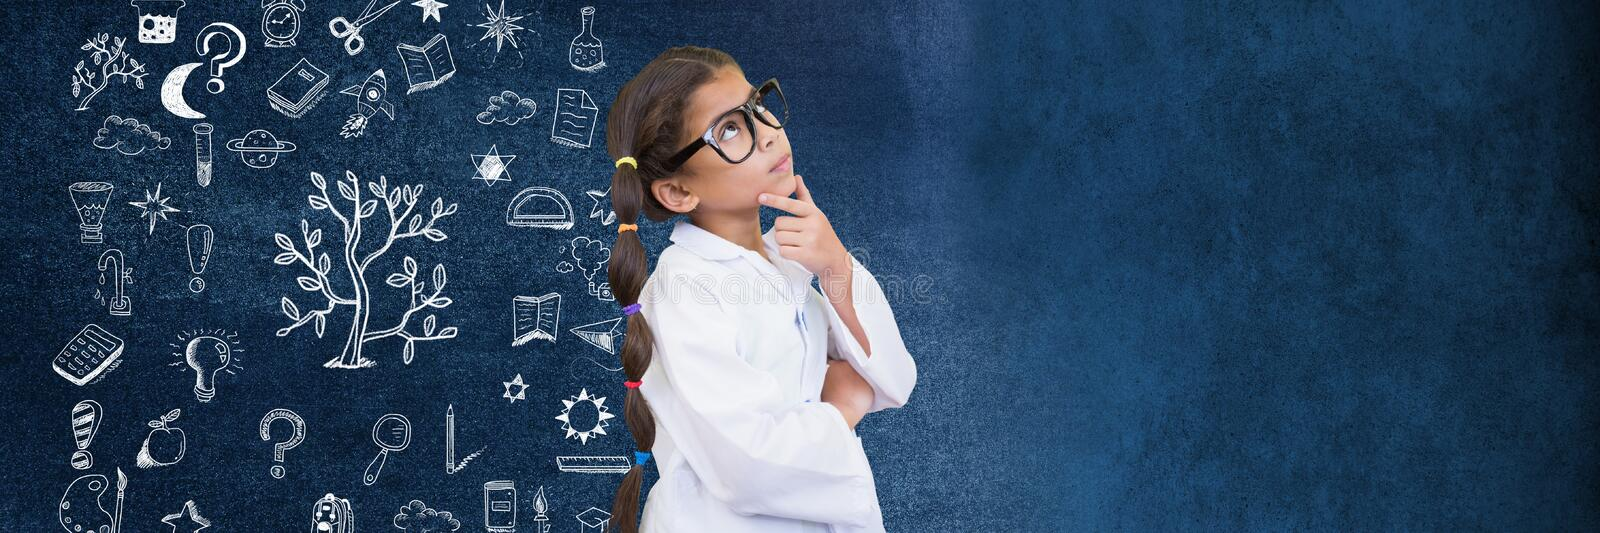 School girl scientist and Education drawing on blackboard for school stock photo